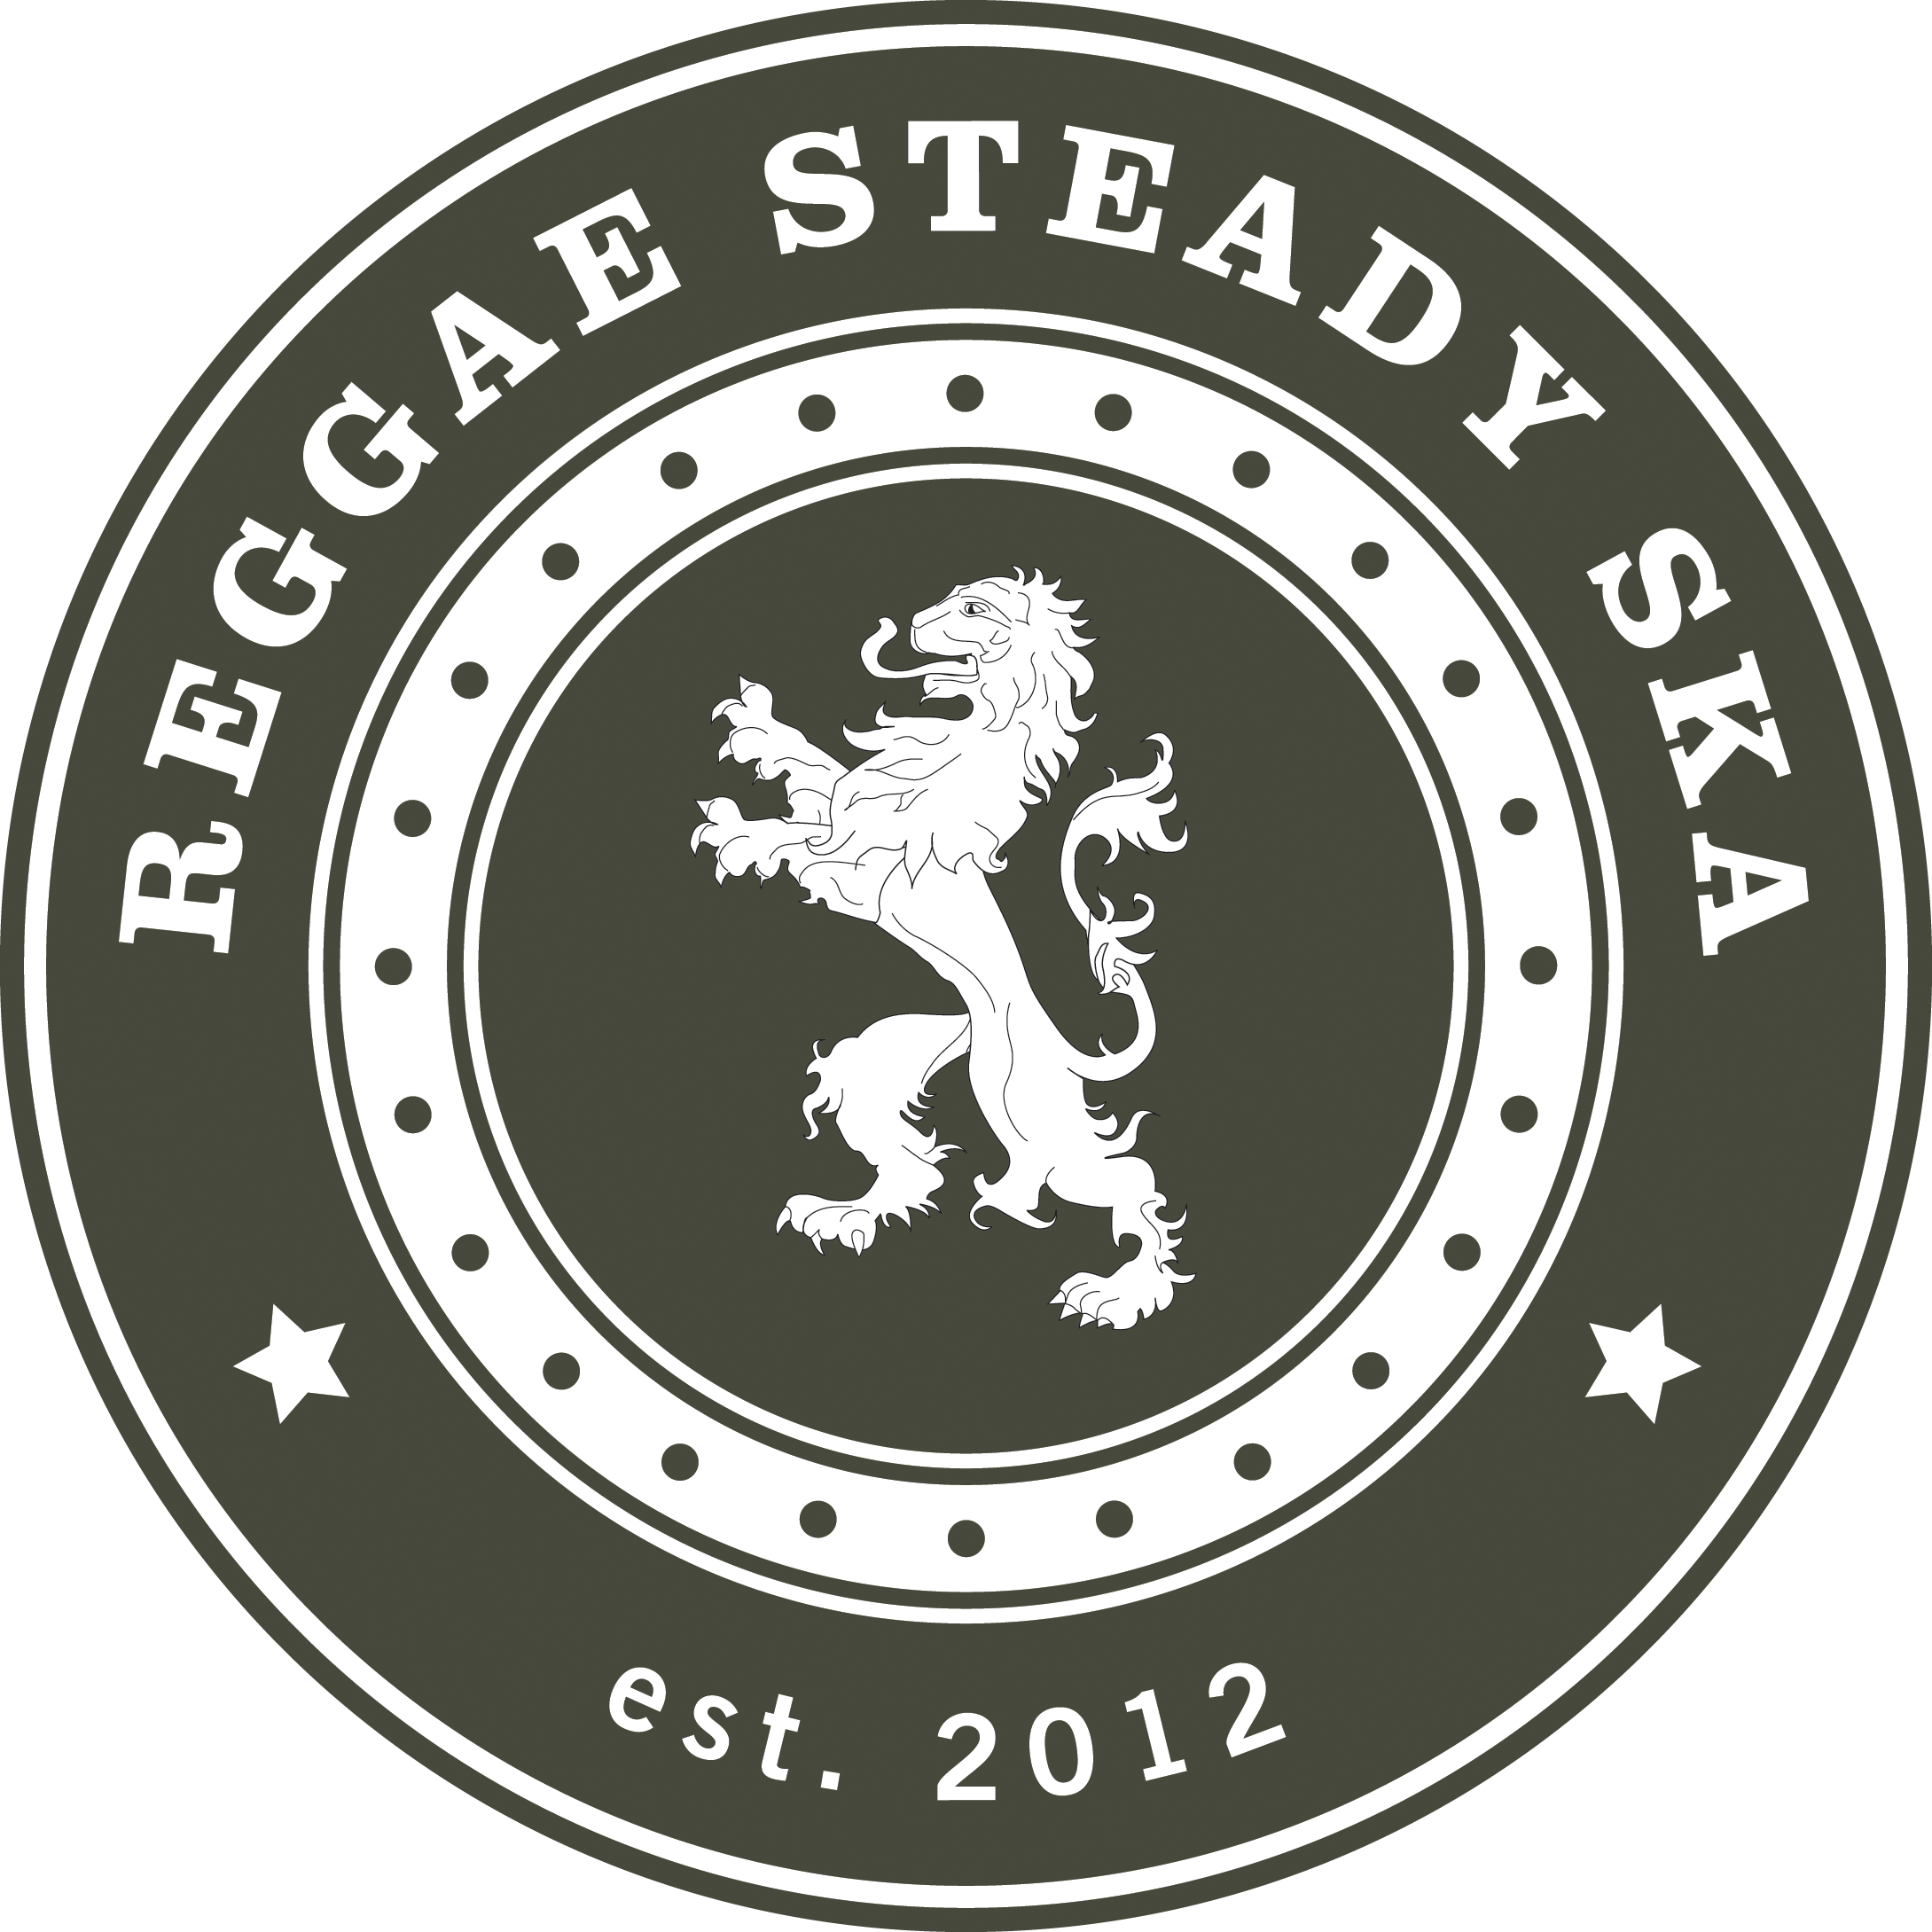 Reggae Steady Ska logo-final-green